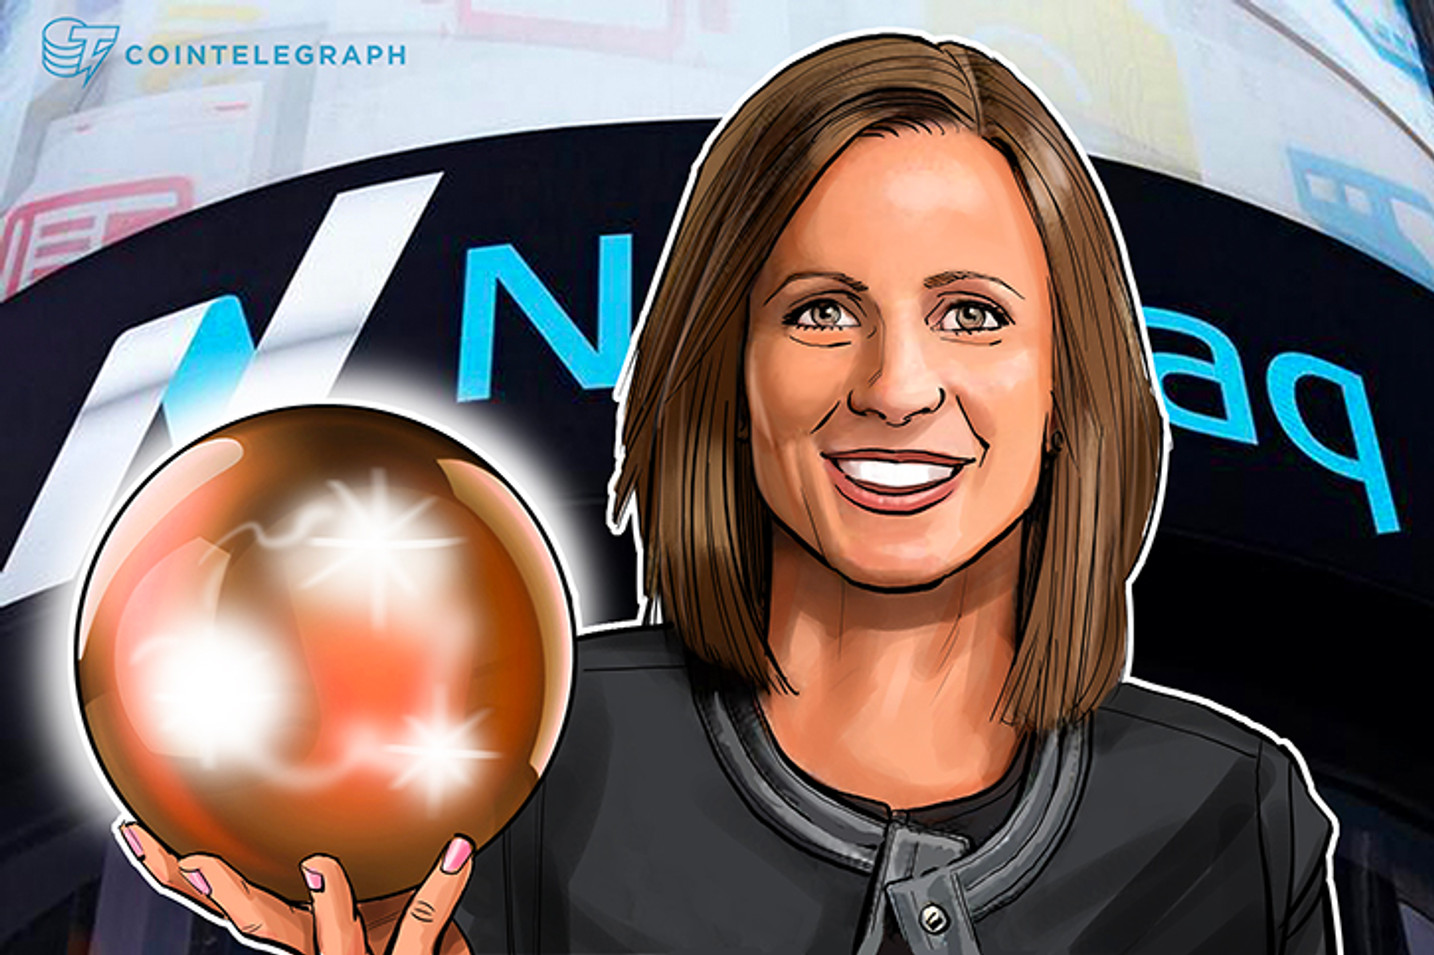 Nasdaq Undecided About Launching Own Bitcoin Futures, 'Still Evaluating' Feasibility